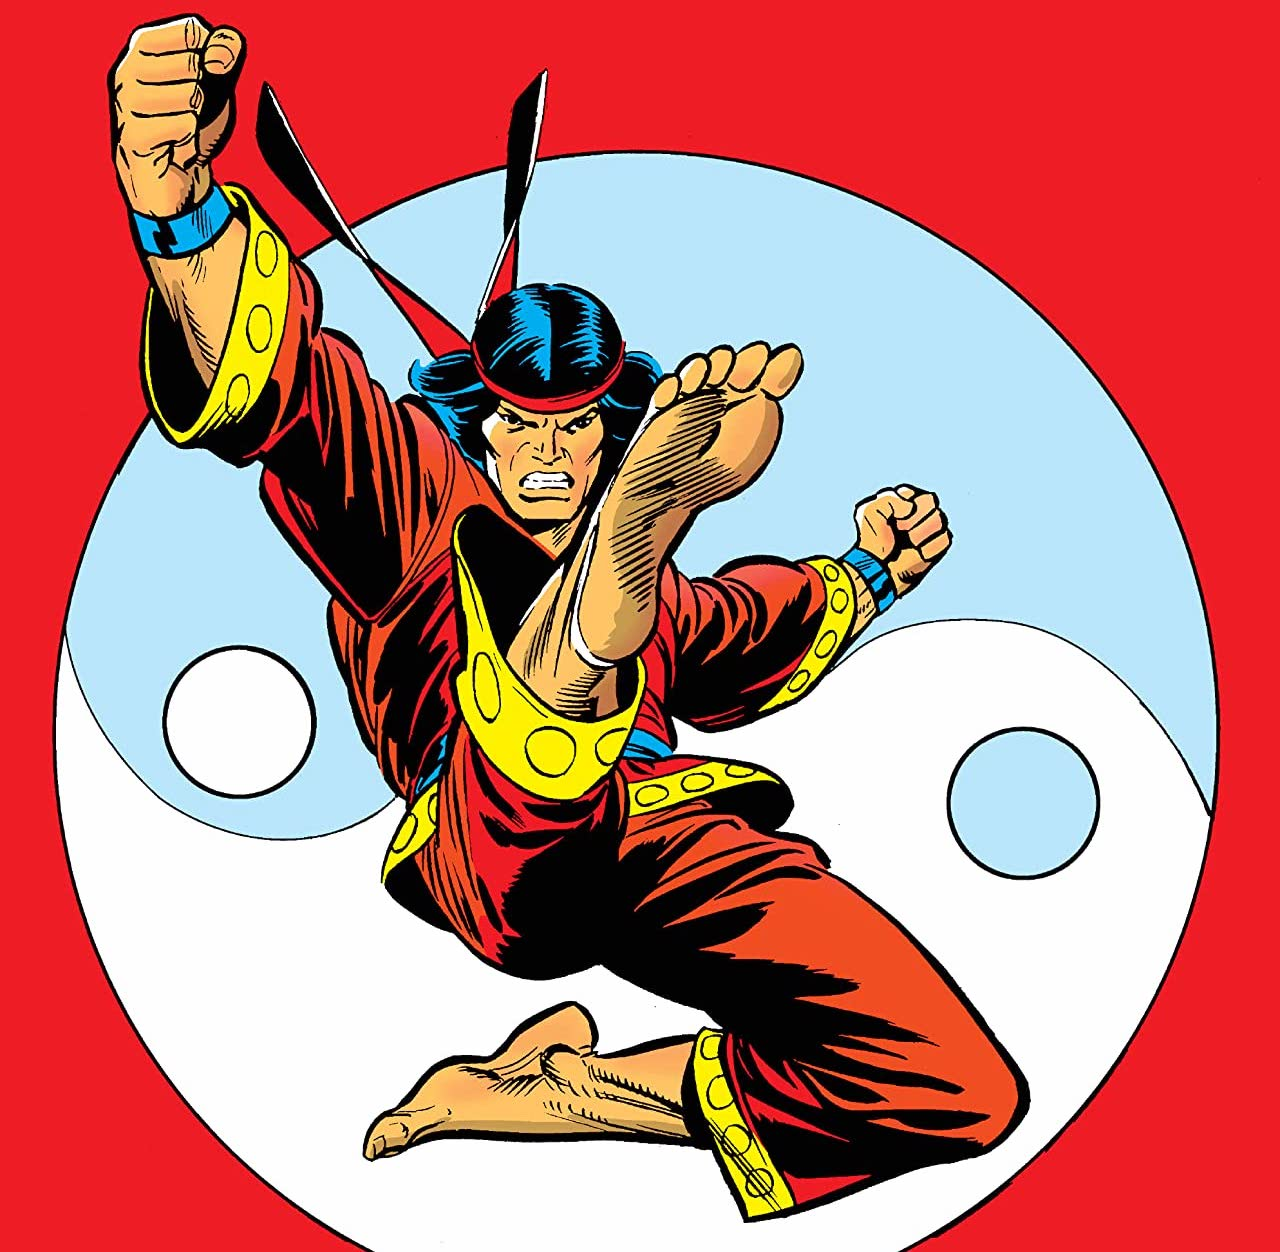 'Shang-Chi: Earth's Mightiest Martial Artist' collects Shang-Chi's side missions